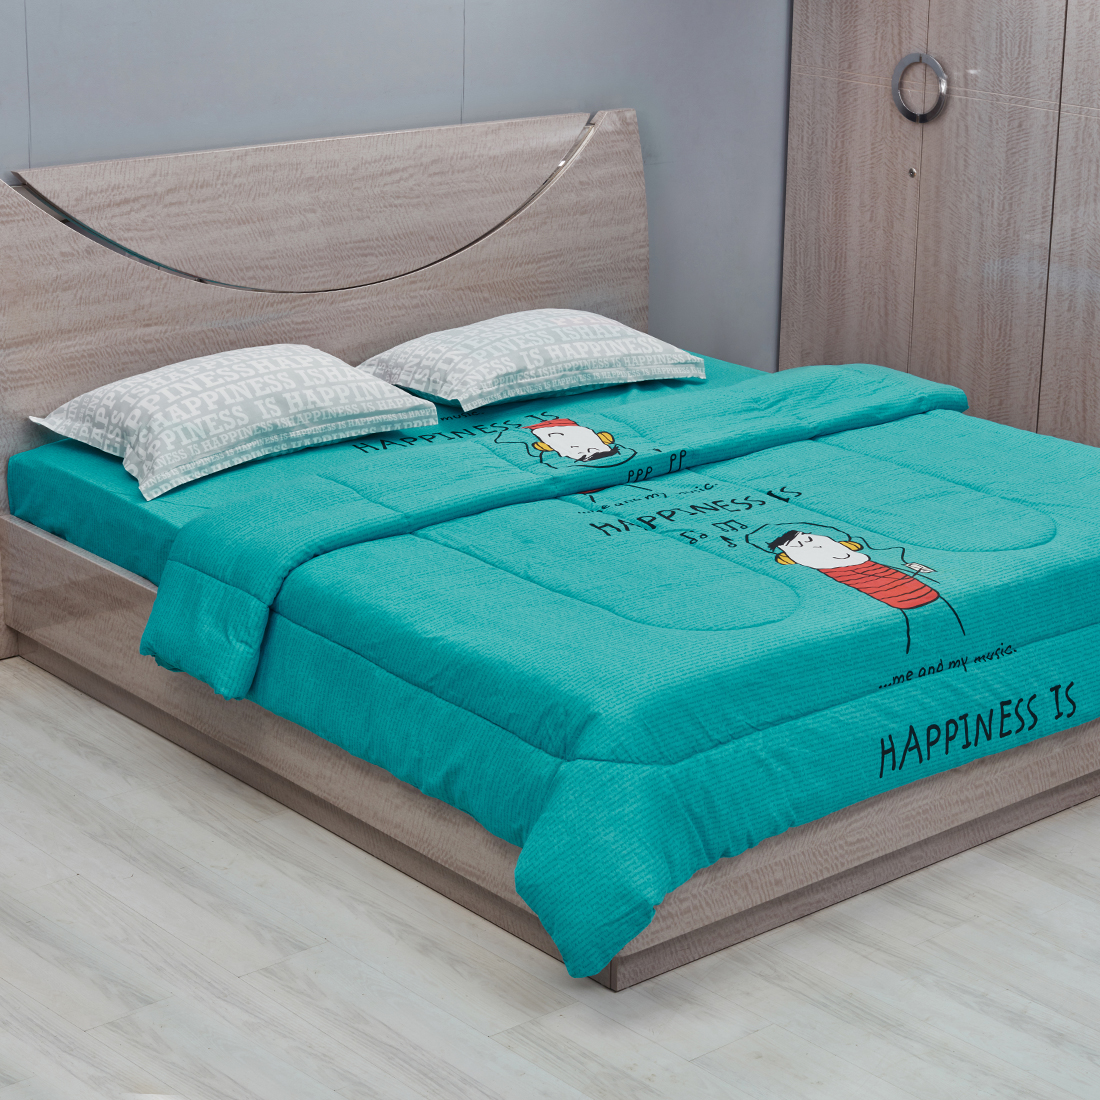 Happiness Double Comforter Teal Cotton Comforters in Teal Colour by Portico